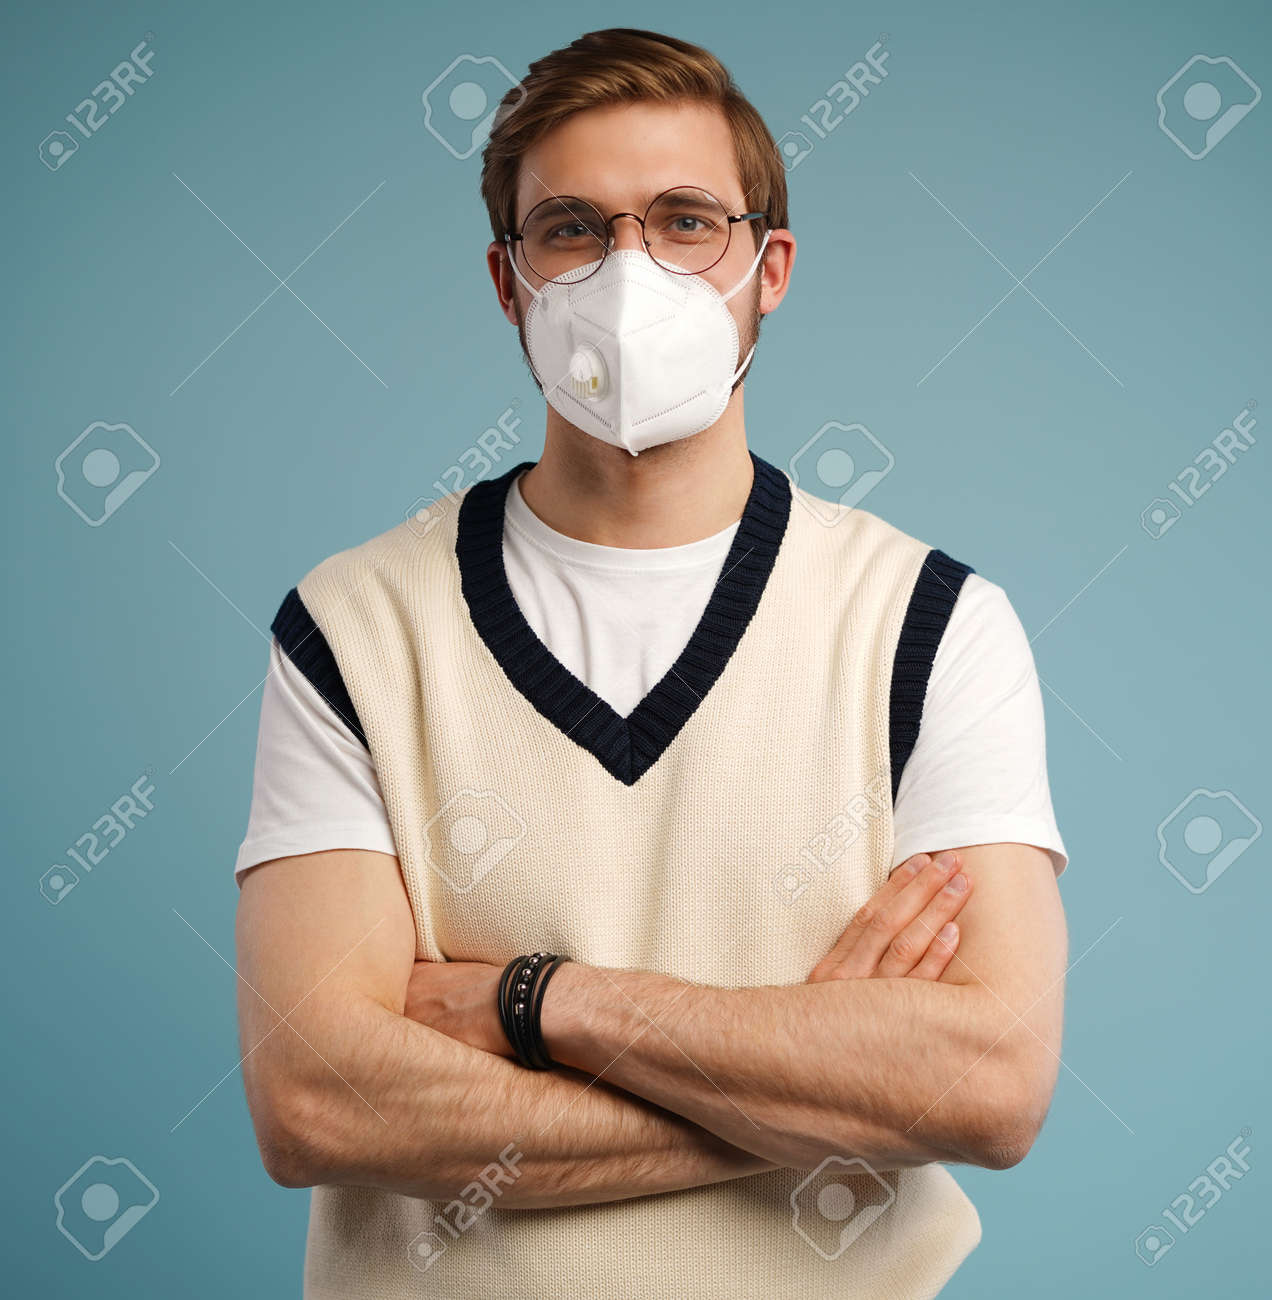 Portrait of handsome young man with surgical medical mask in casual style shirt standing, looking at camera with smile - 171597156